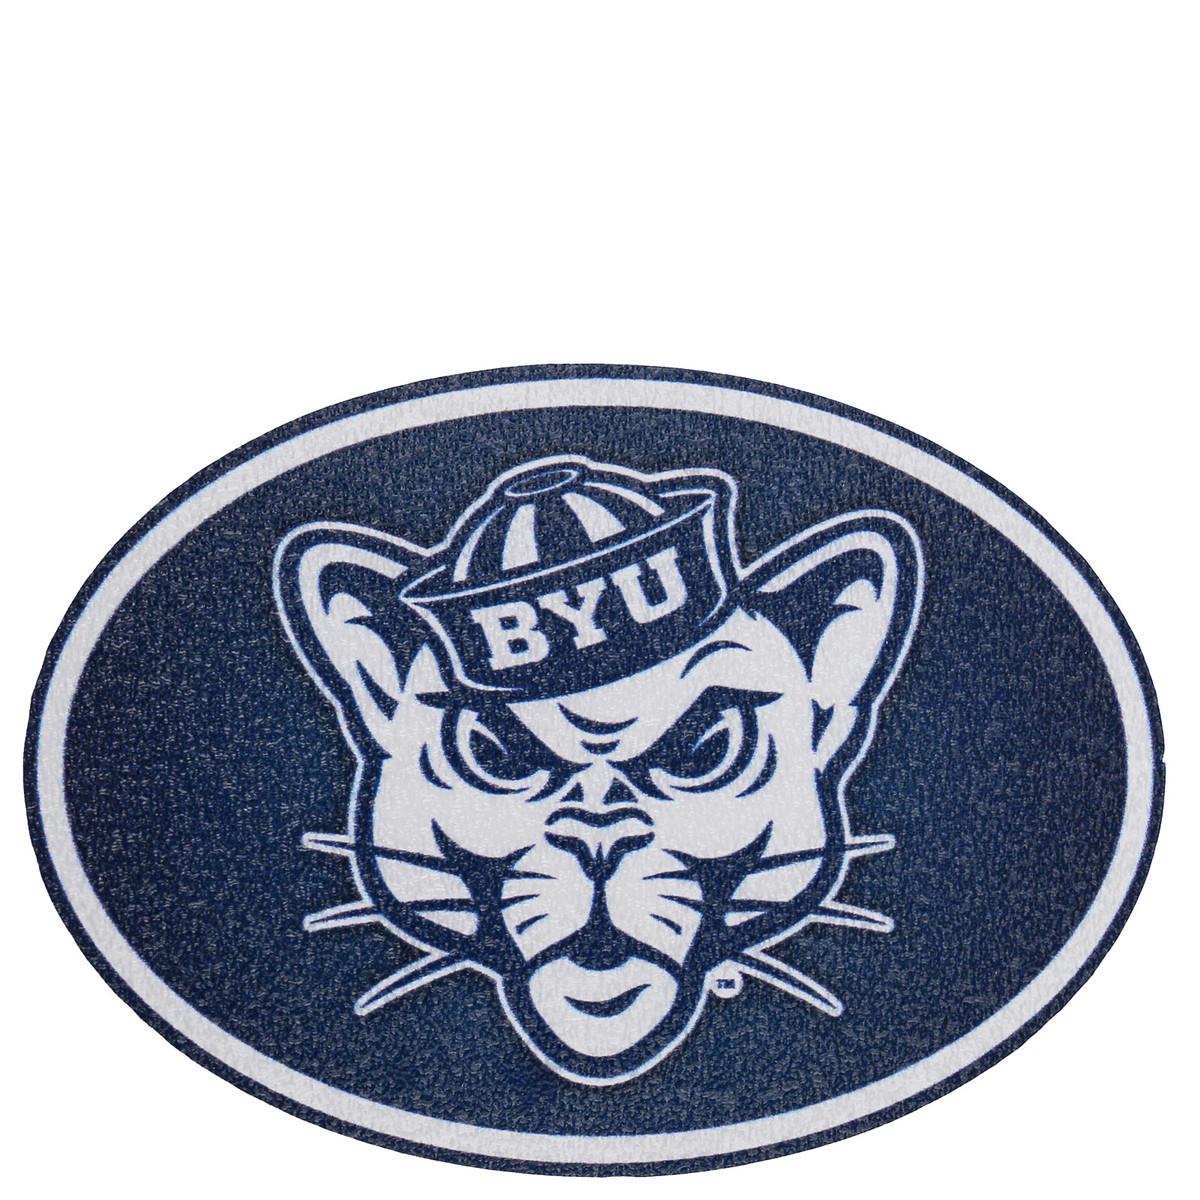 Sailor hat cougar byu decal 2 5 x 1 75